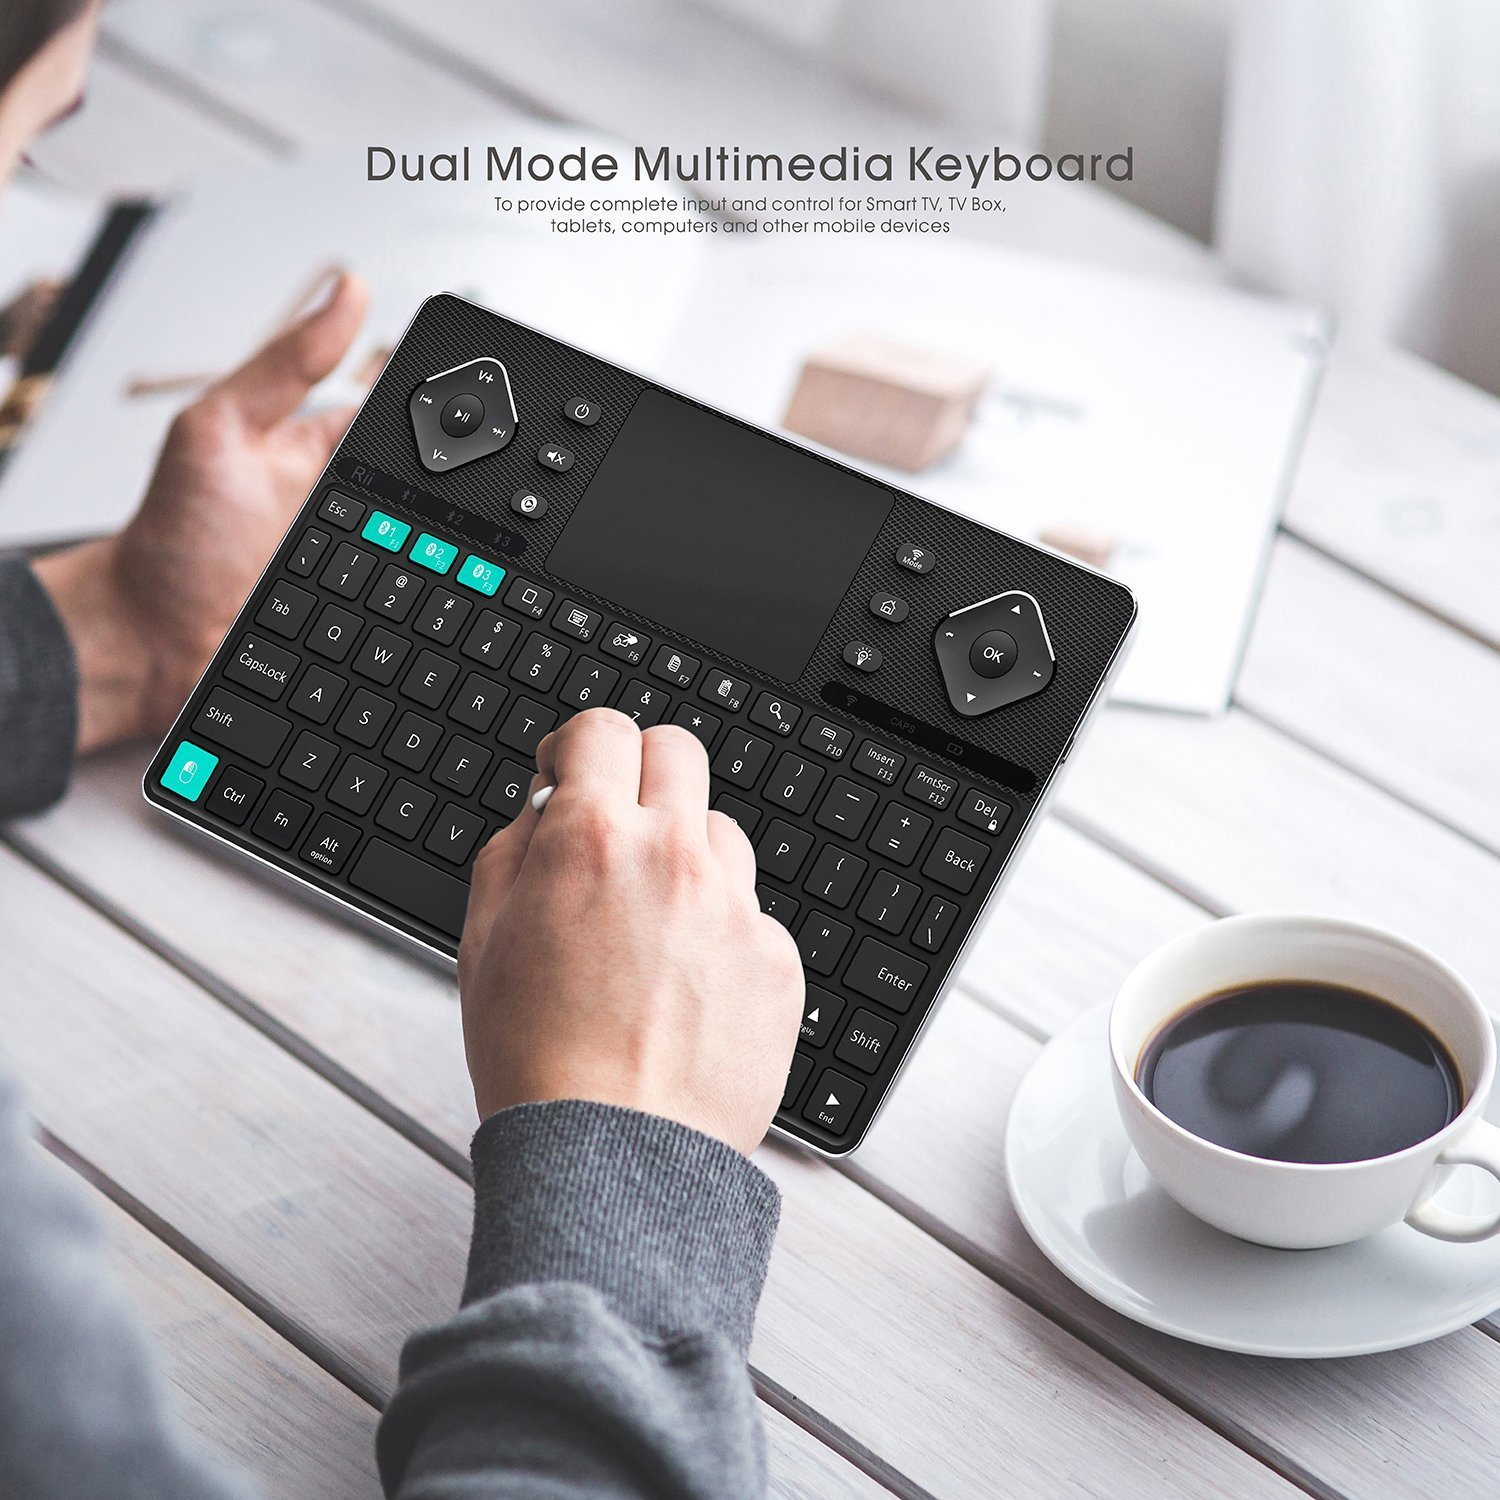 Rii (2018 New arrival) K16 Dual-mode Bluetooth &RF wireless Ultra Slim Rechargable Multimedia Backlit Keyboard With Touchpad Mouse And Aluminium Cover For PC,Tablets, Smart TV,Android TV Box,Windows by Rii (Image #4)